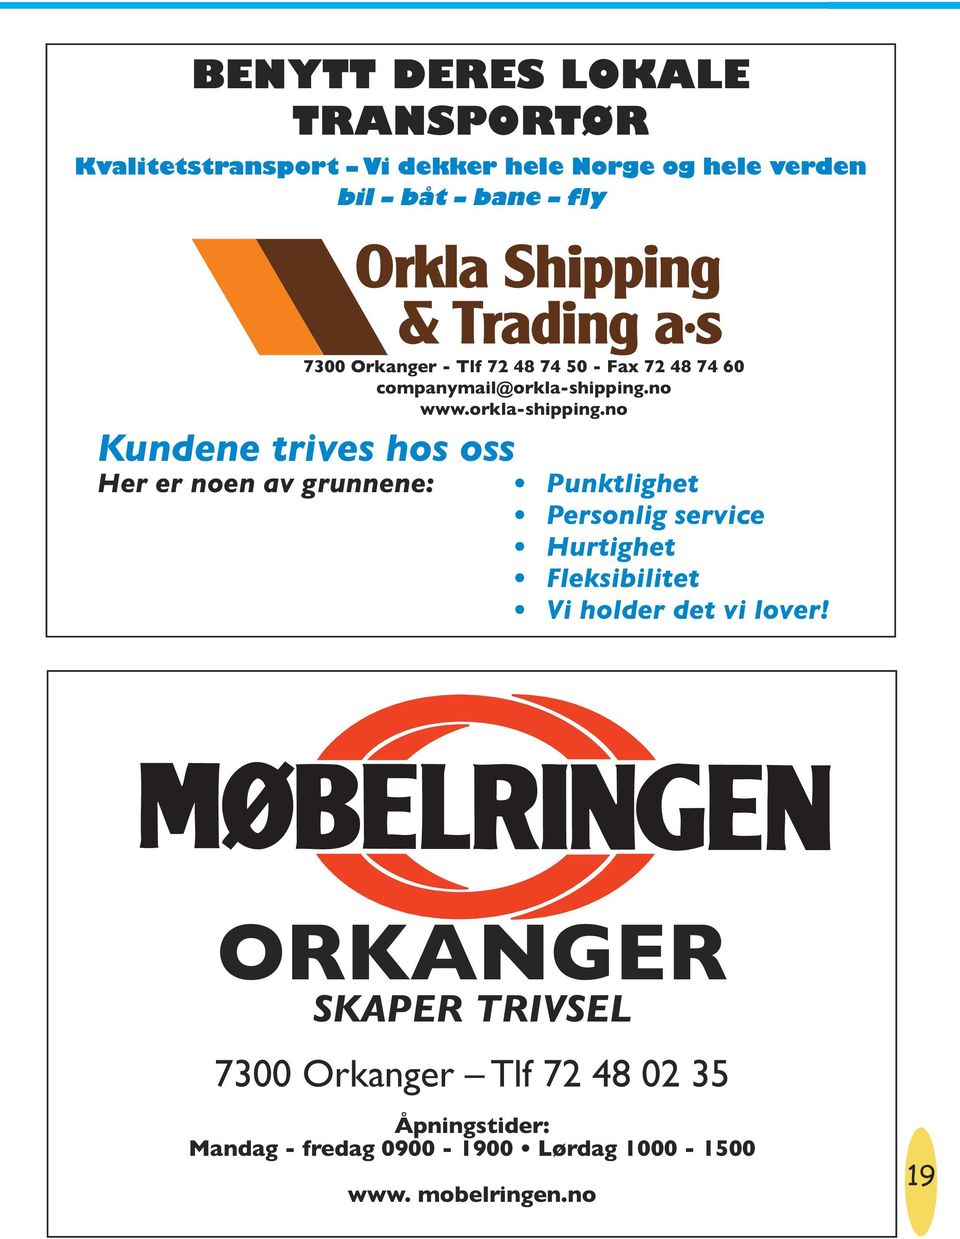 no www.orkla-shipping.